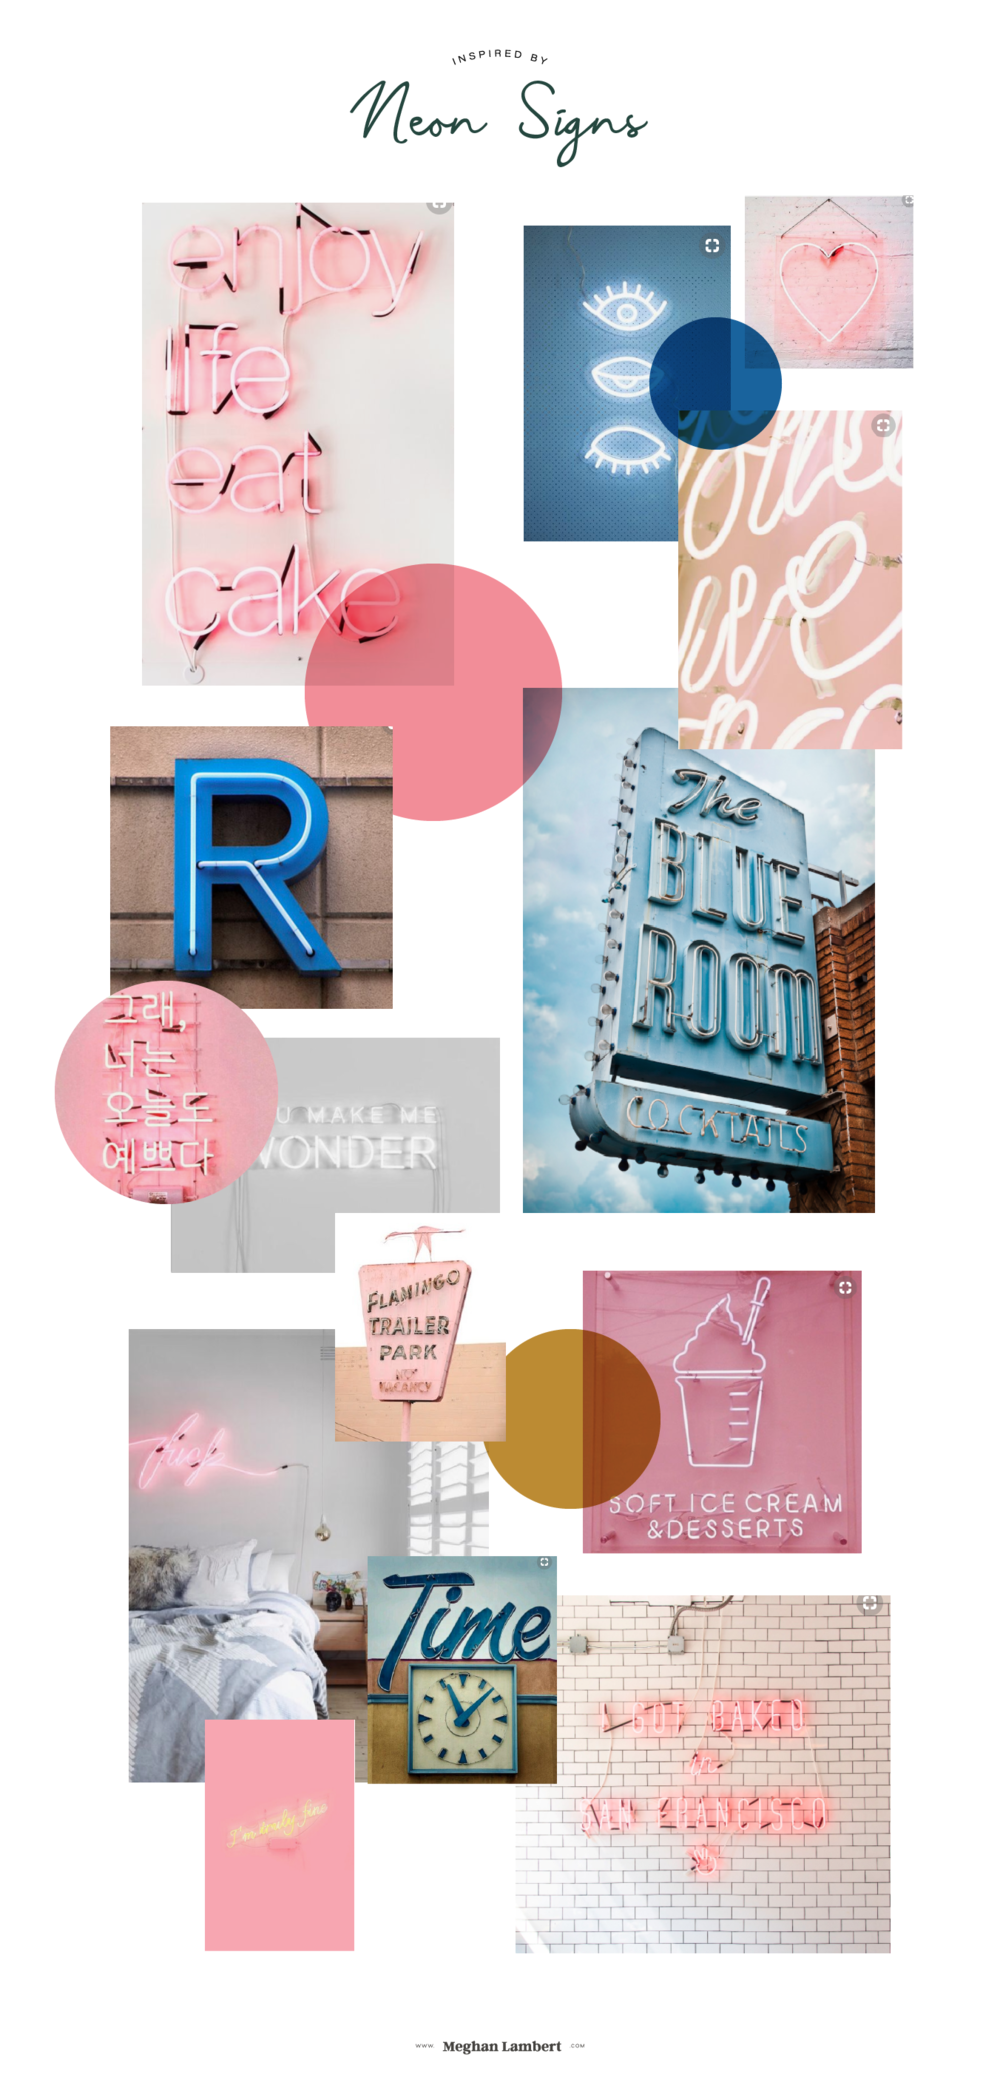 Inspired by Neon Signs from the Studio Journal of Meghan Lambert, Graphic Design